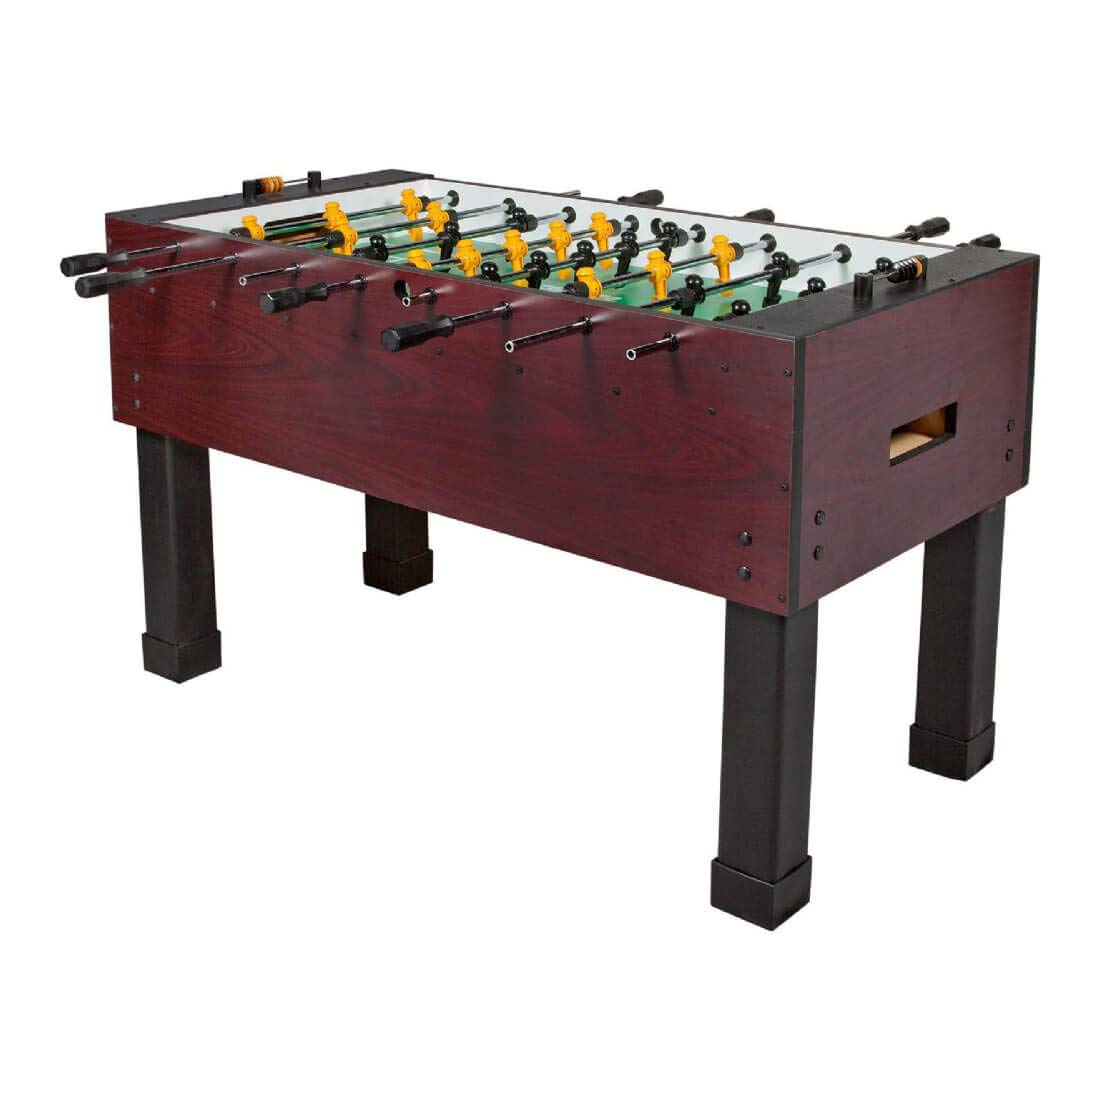 Tornado Sport Foosball Table - Commercial Tournament Quality Table Soccer Game for The Home (Sport) by Tornado